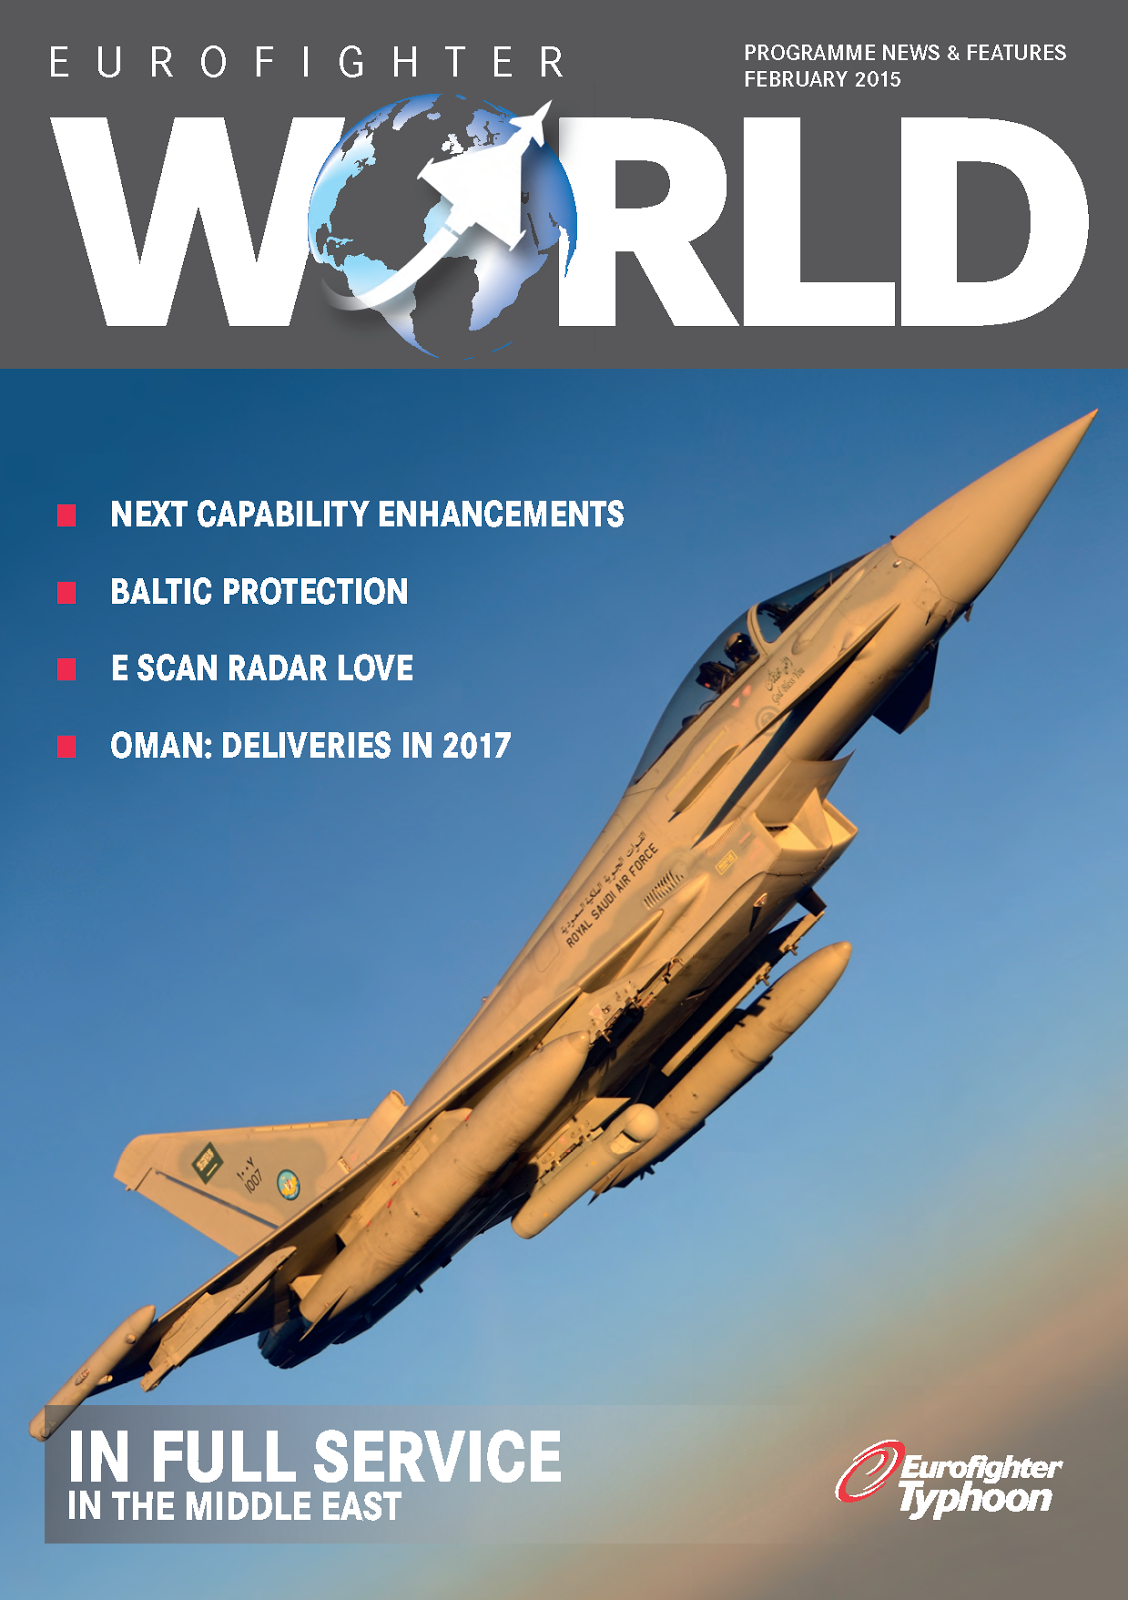 http://www.eurofighter.com/downloads/Eurofighter_World.pdf